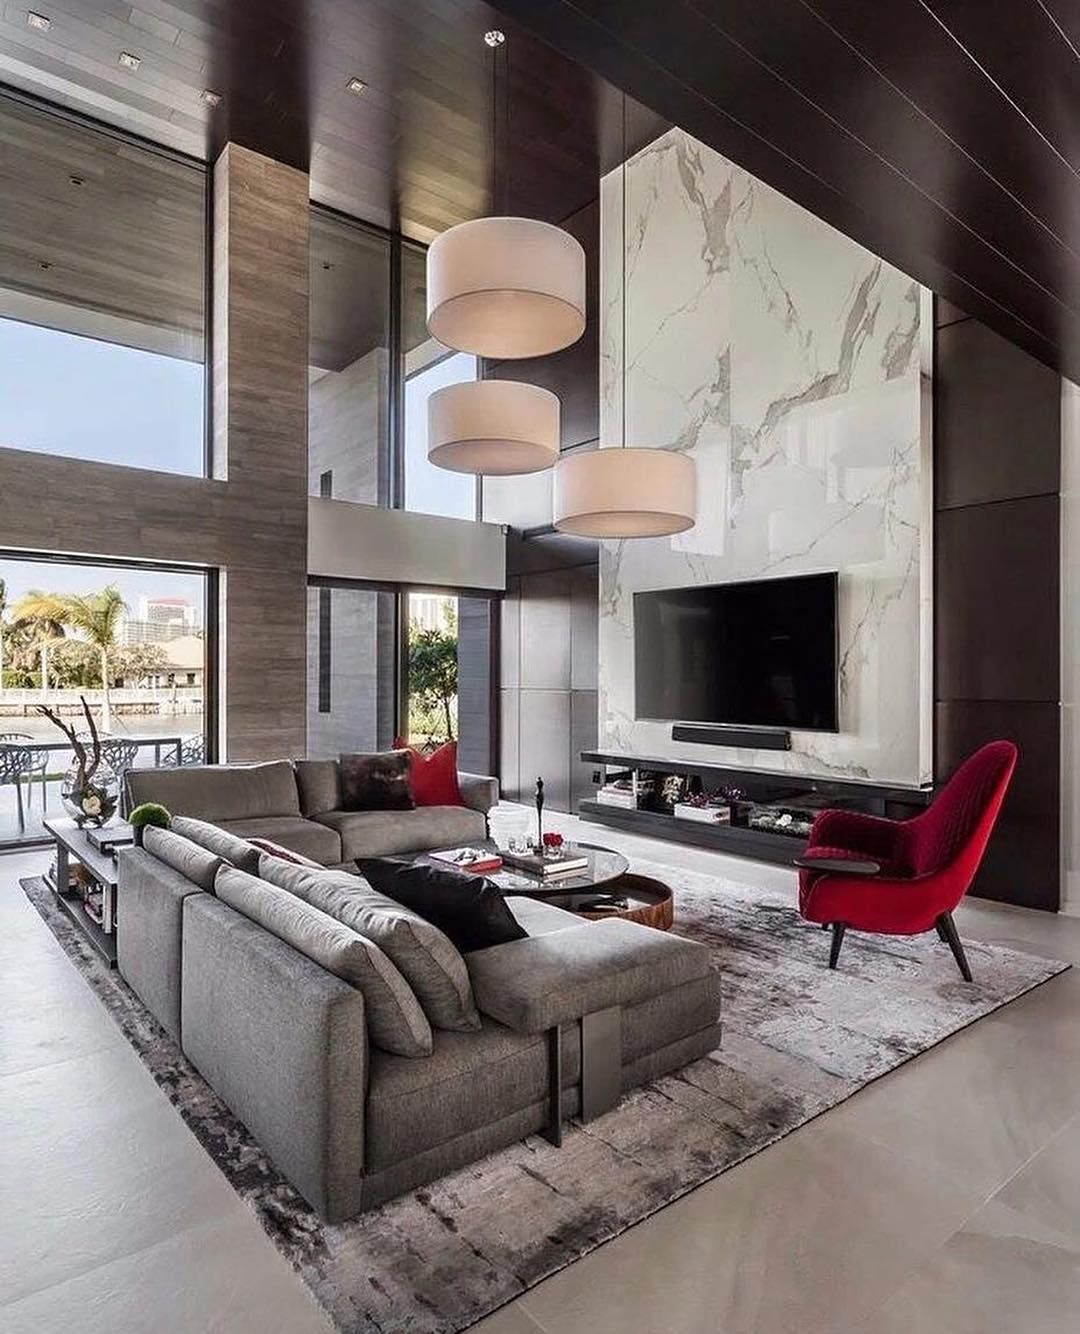 """THE LUXURY INTERIOR on Instagram """"Any thoughts on this beautiful ..."""